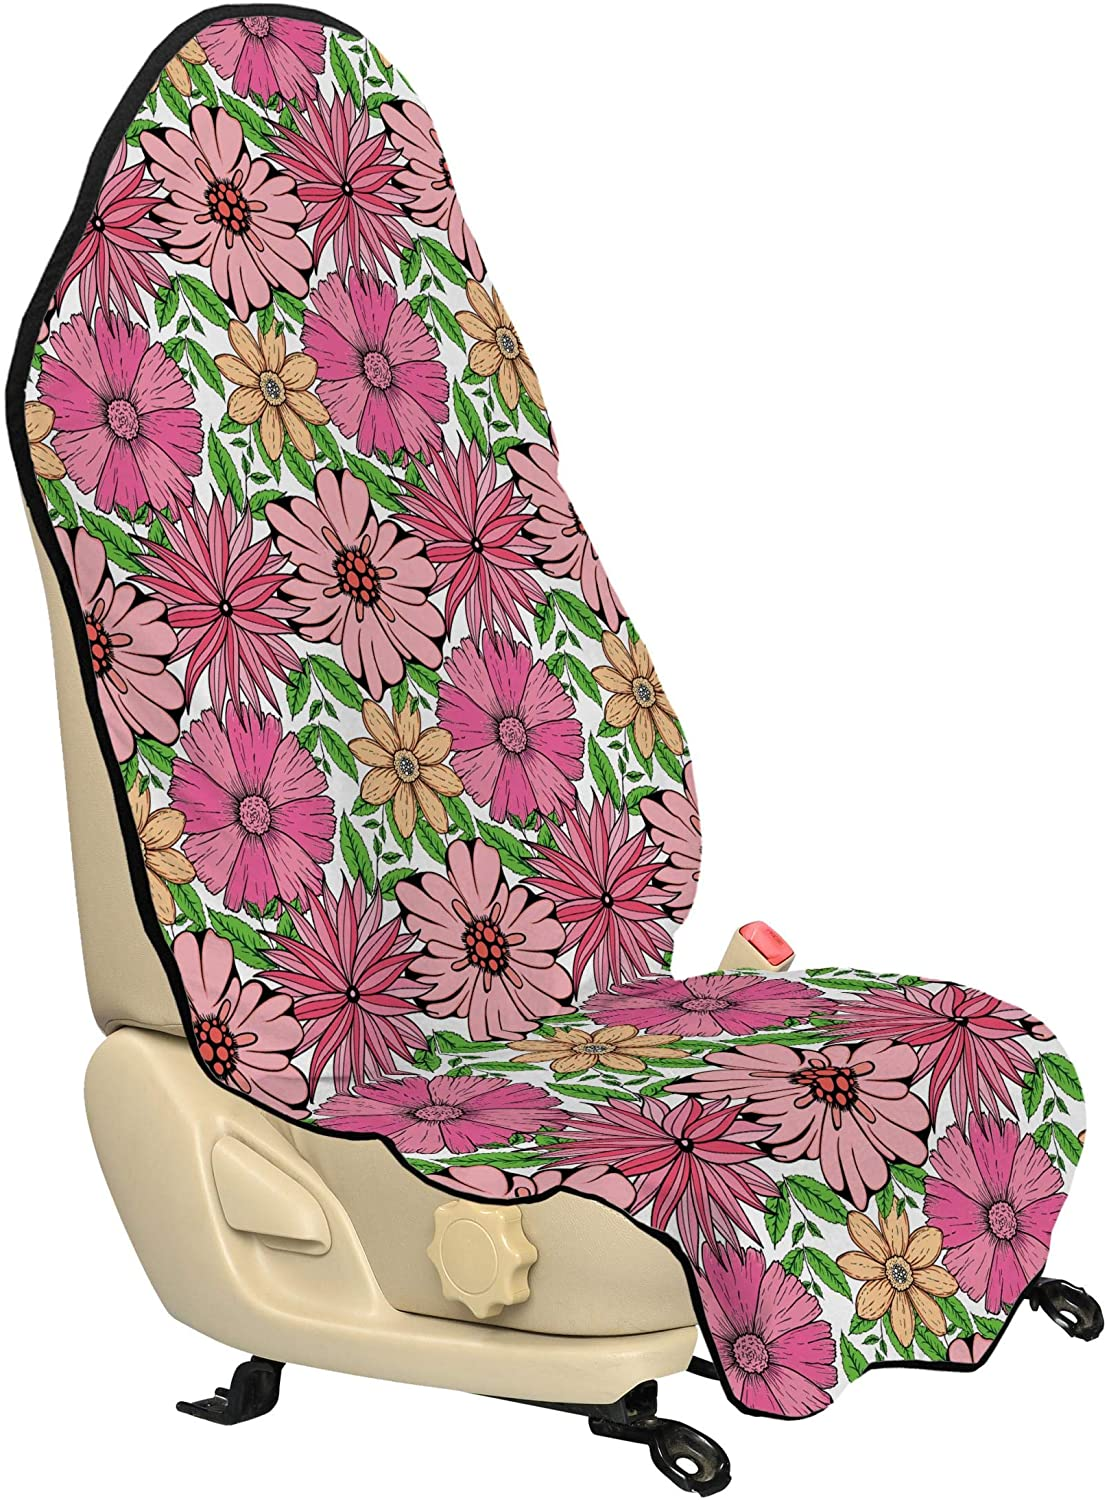 Lunarable Floral Car Seat Hoodie, Medley of Hand Drawn Pinky Spring Flowers of Chrysanthemum Daisy and Lobed Leaves, Car Seat Cover Protector Non Slip Backing Universal Fit, 30